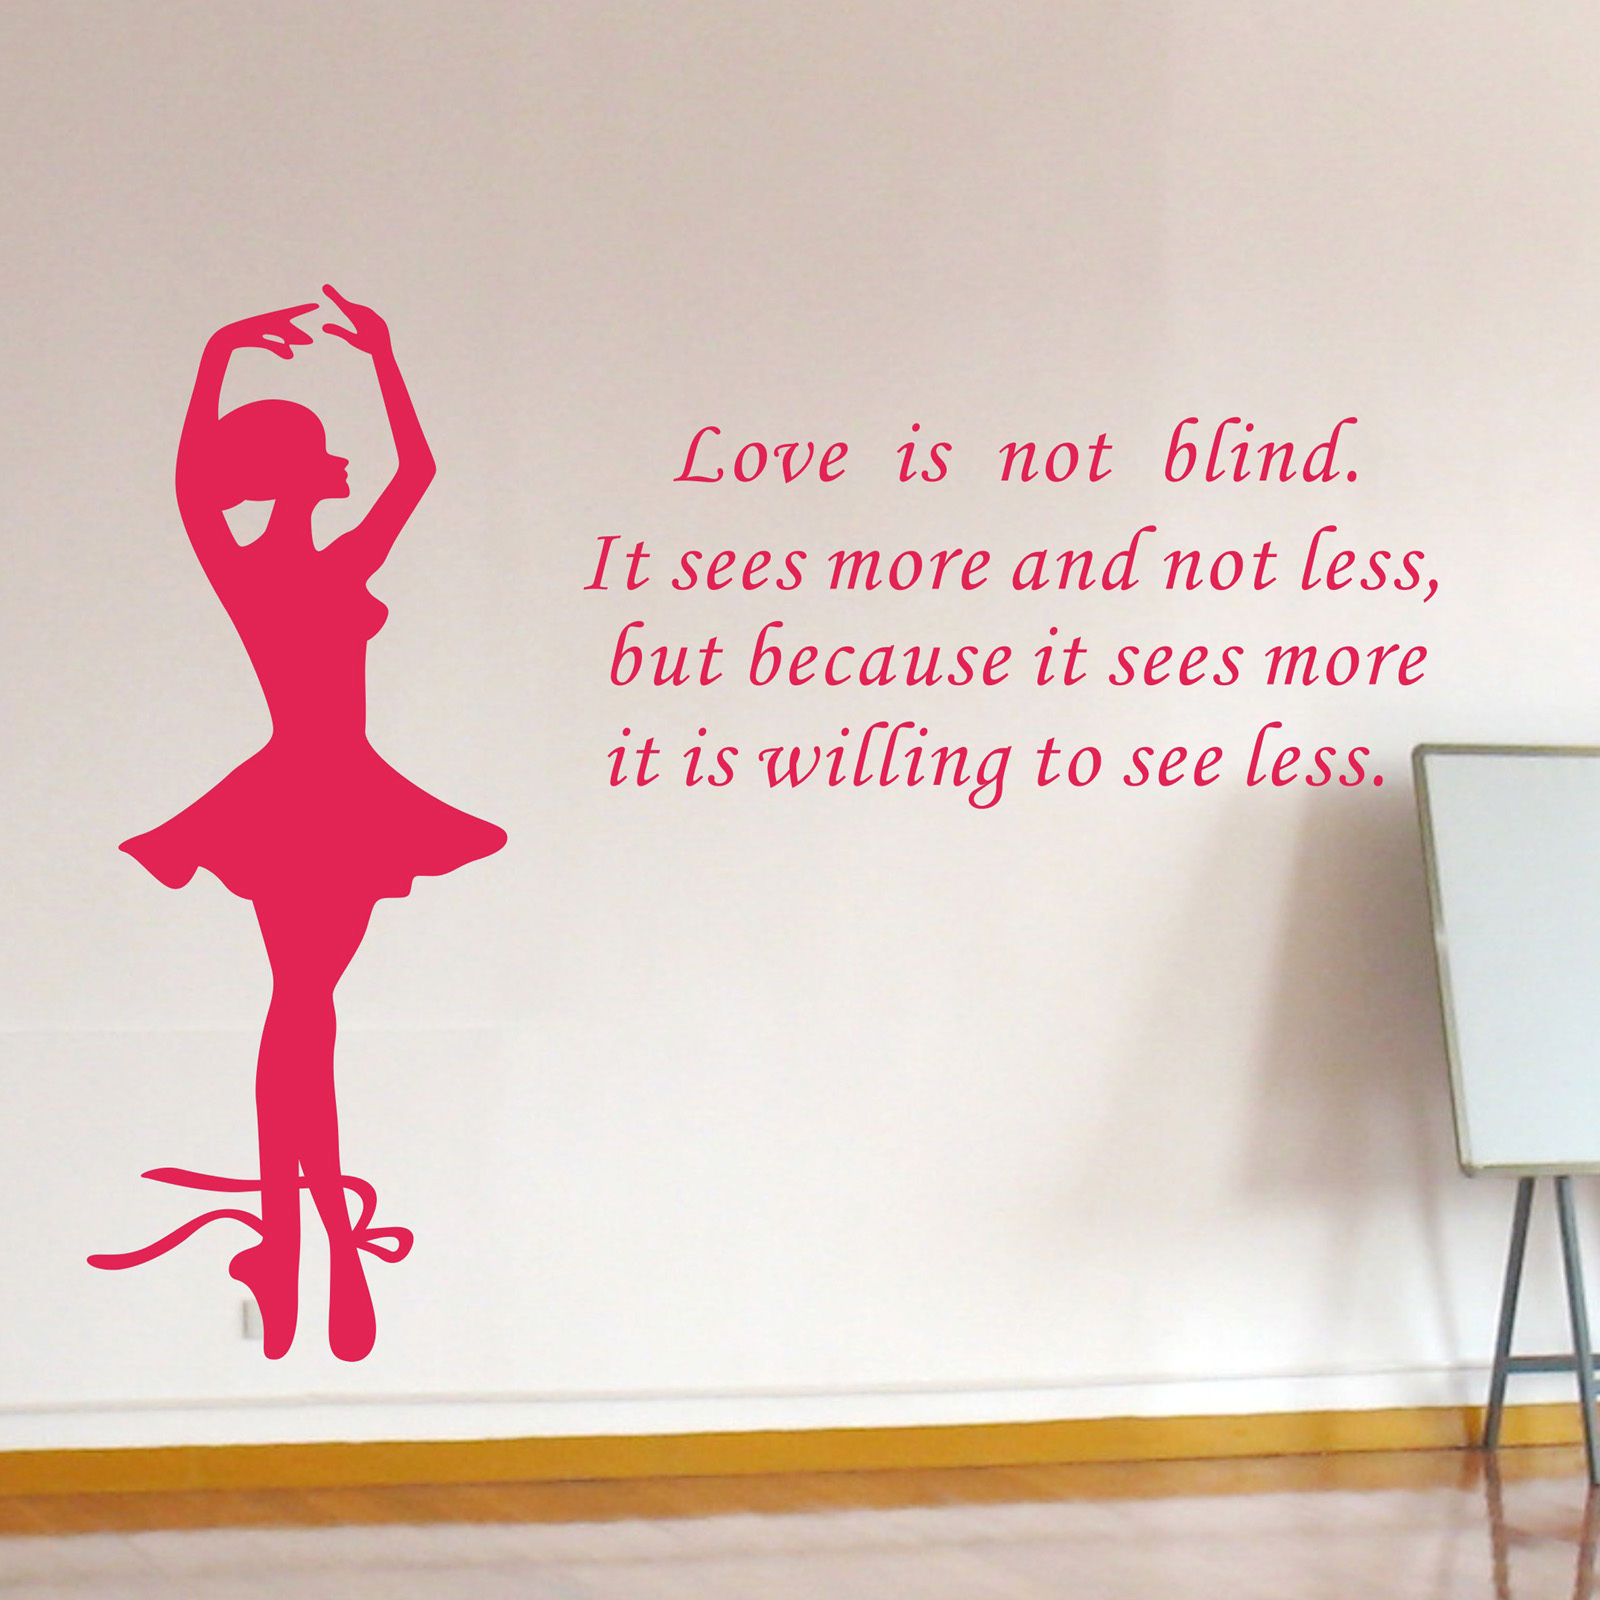 Blind Quotes New Ballet Dancing Rome Decals Dancer Love Is Not Blind Quotes